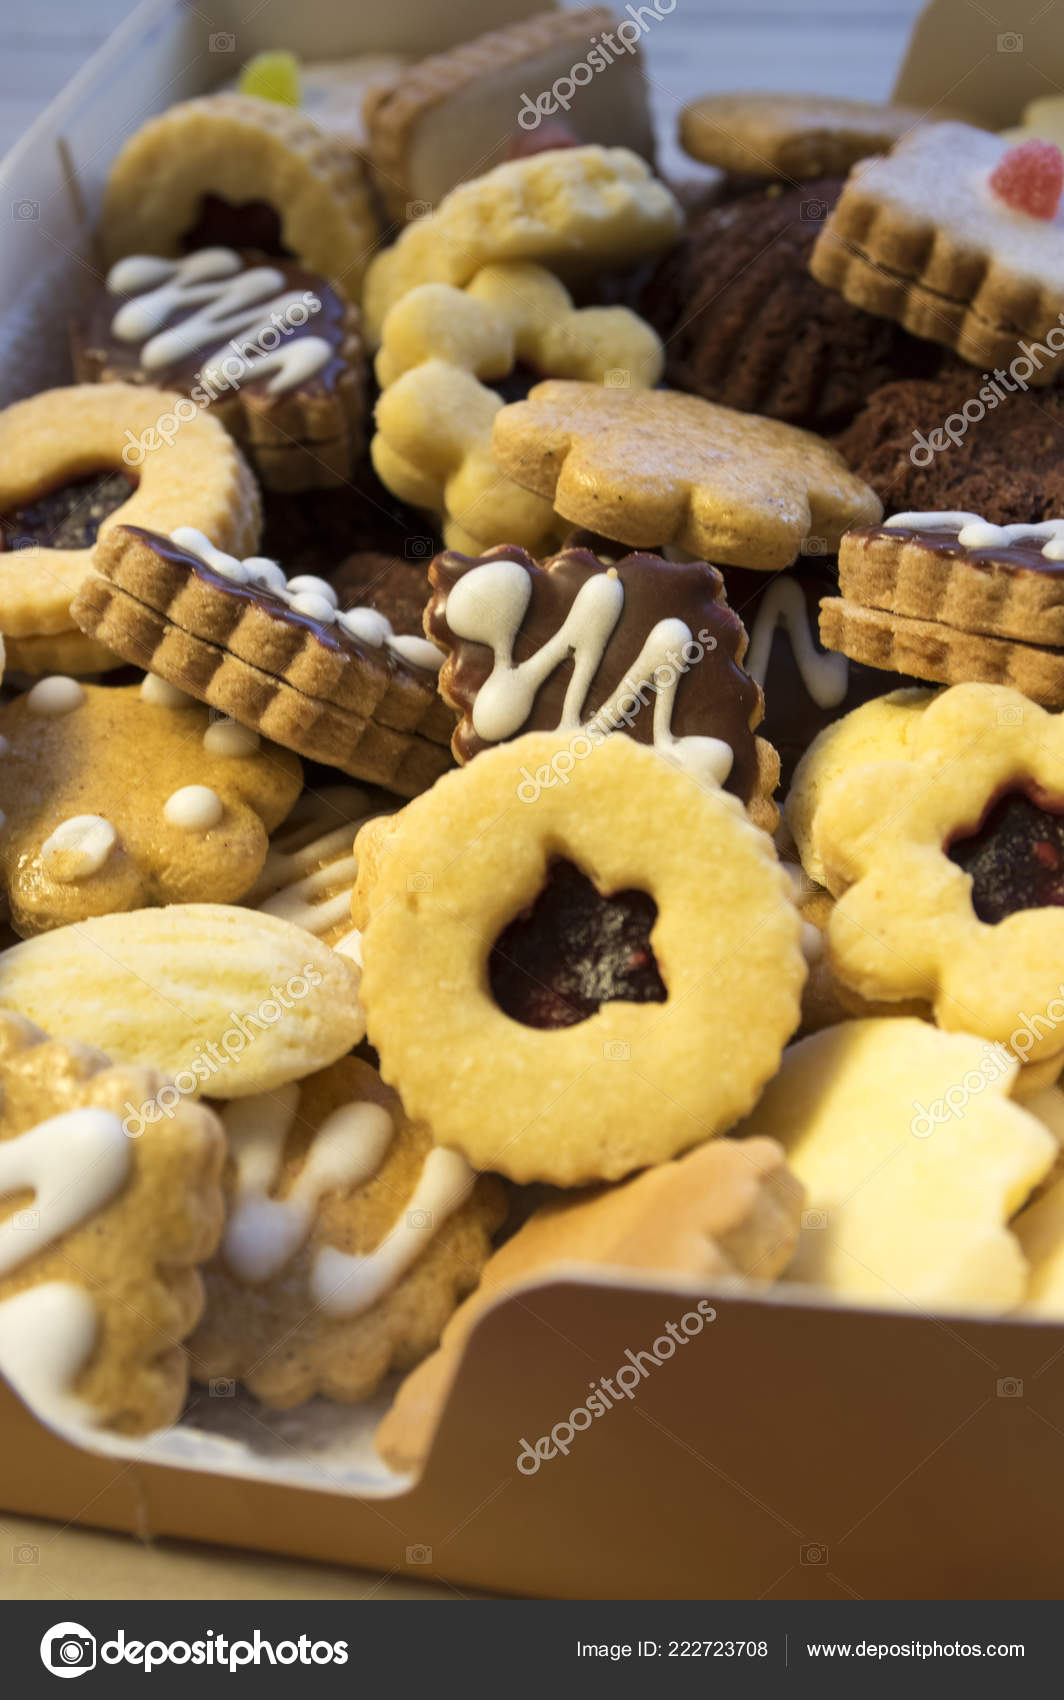 Many Kinds Christmas Cookies One Pile Brown Cardboard Box Stock